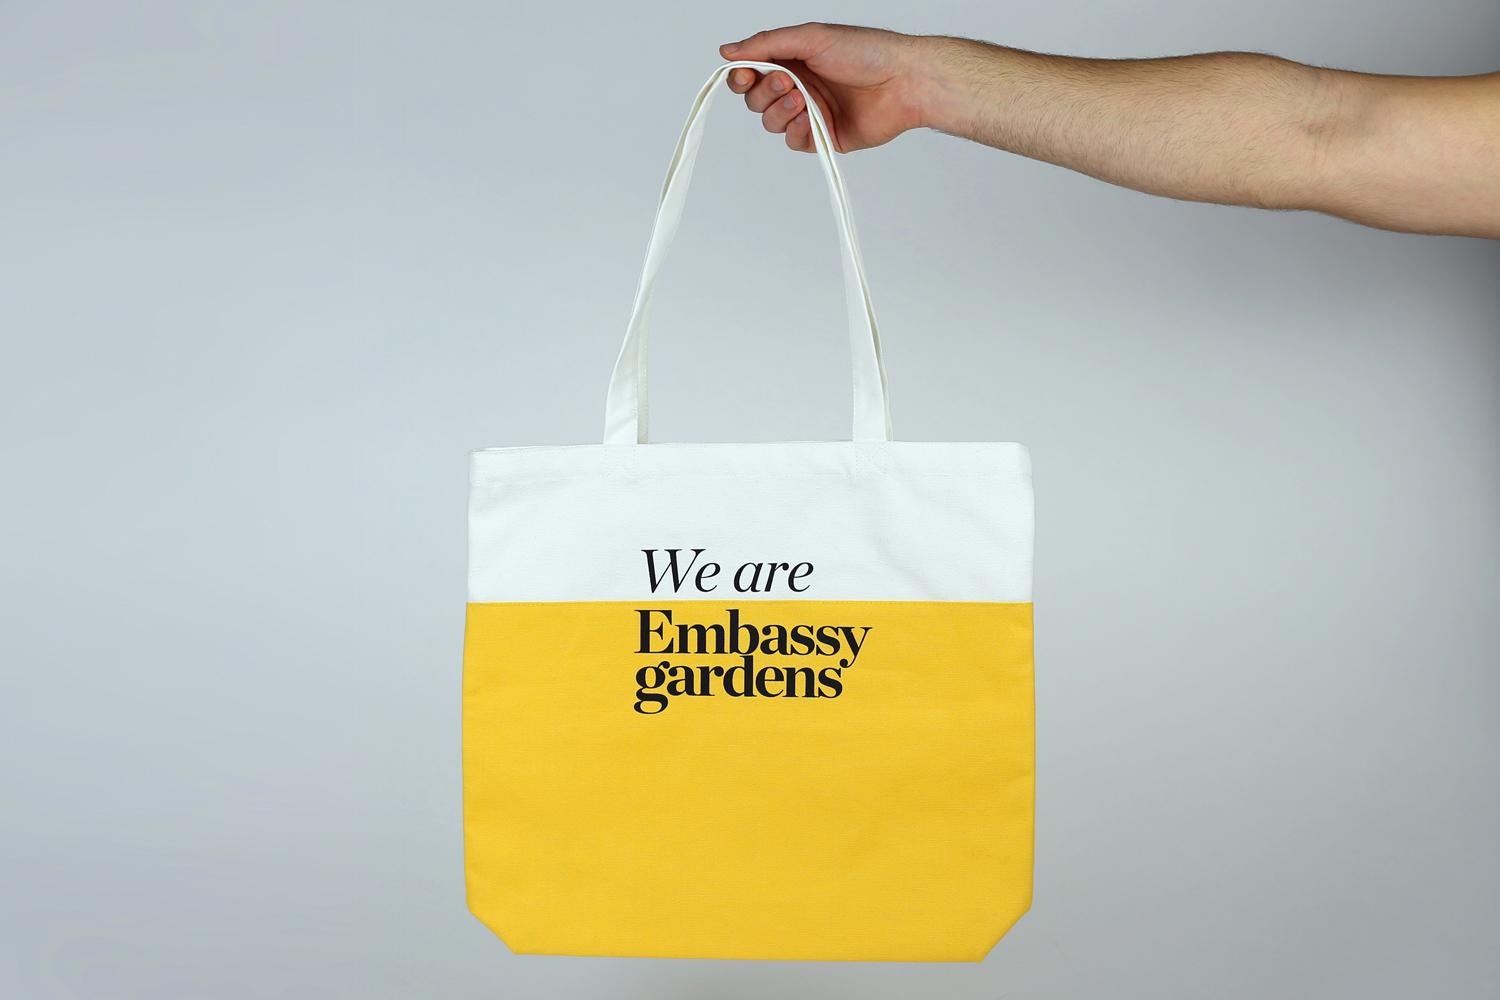 Progress Packaging Tote Bag Canvas Shoulder Fabric Eco Friendly Reusable Bespoke Custom Made Marketing Promotional